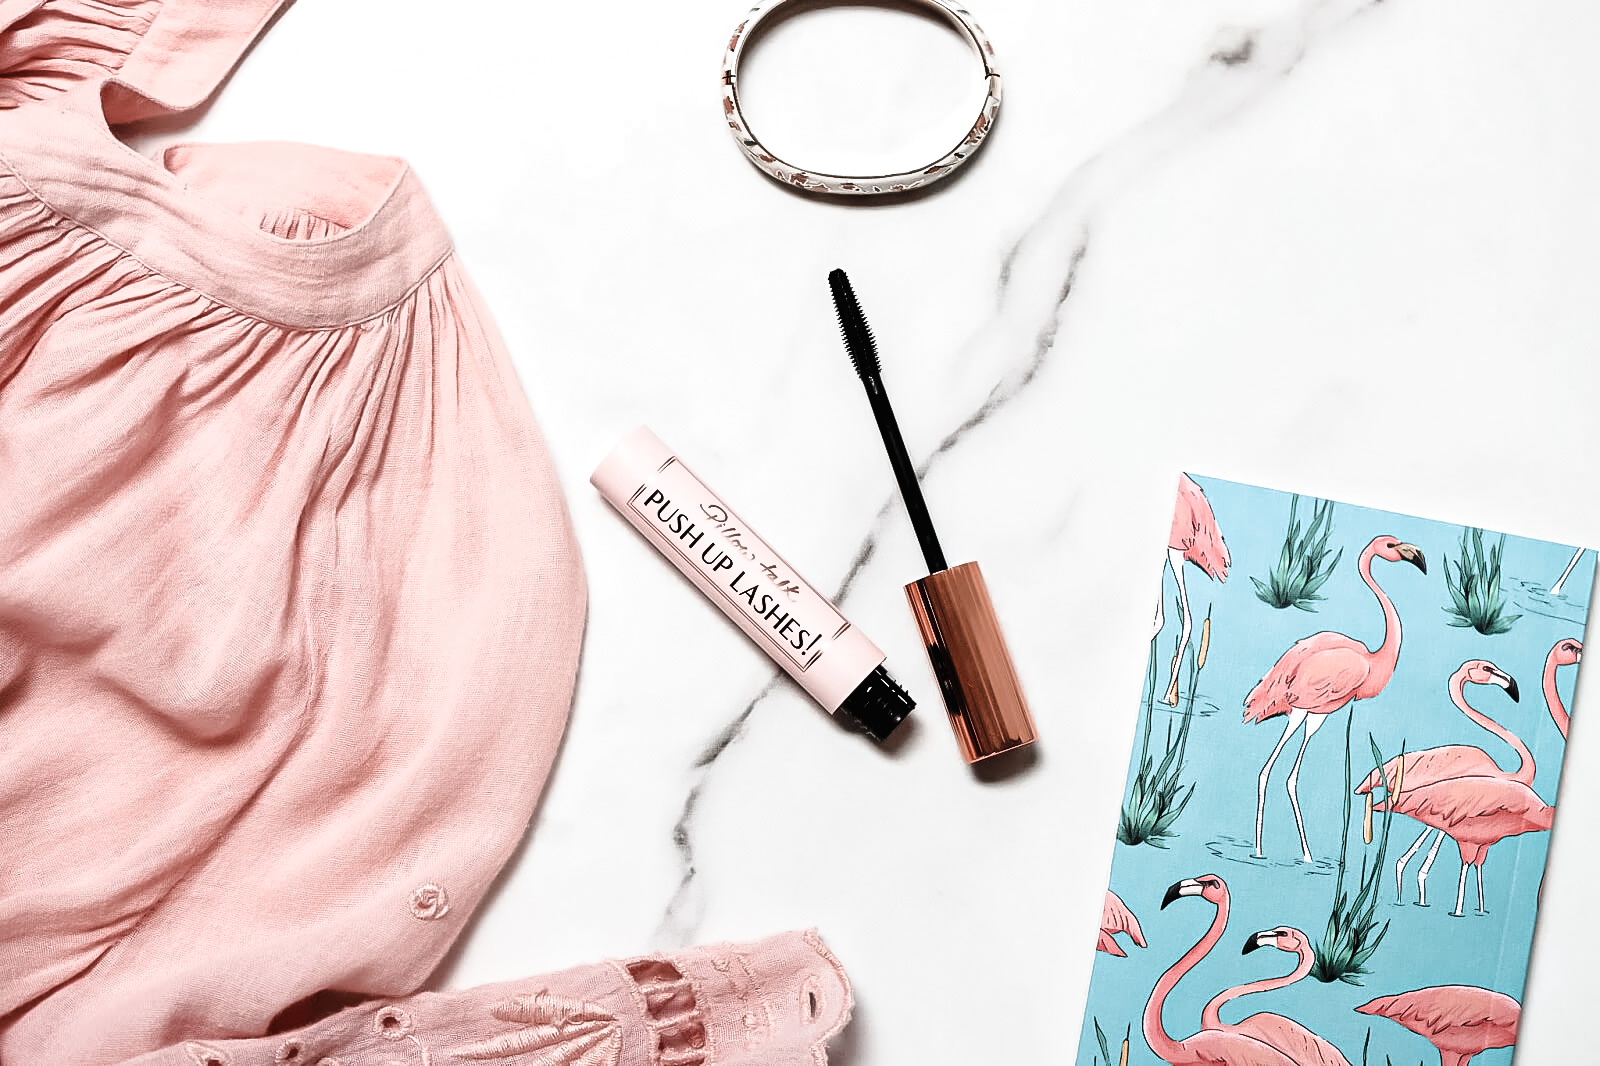 Charlotte Tilbury Pillow Talk Mascara avis